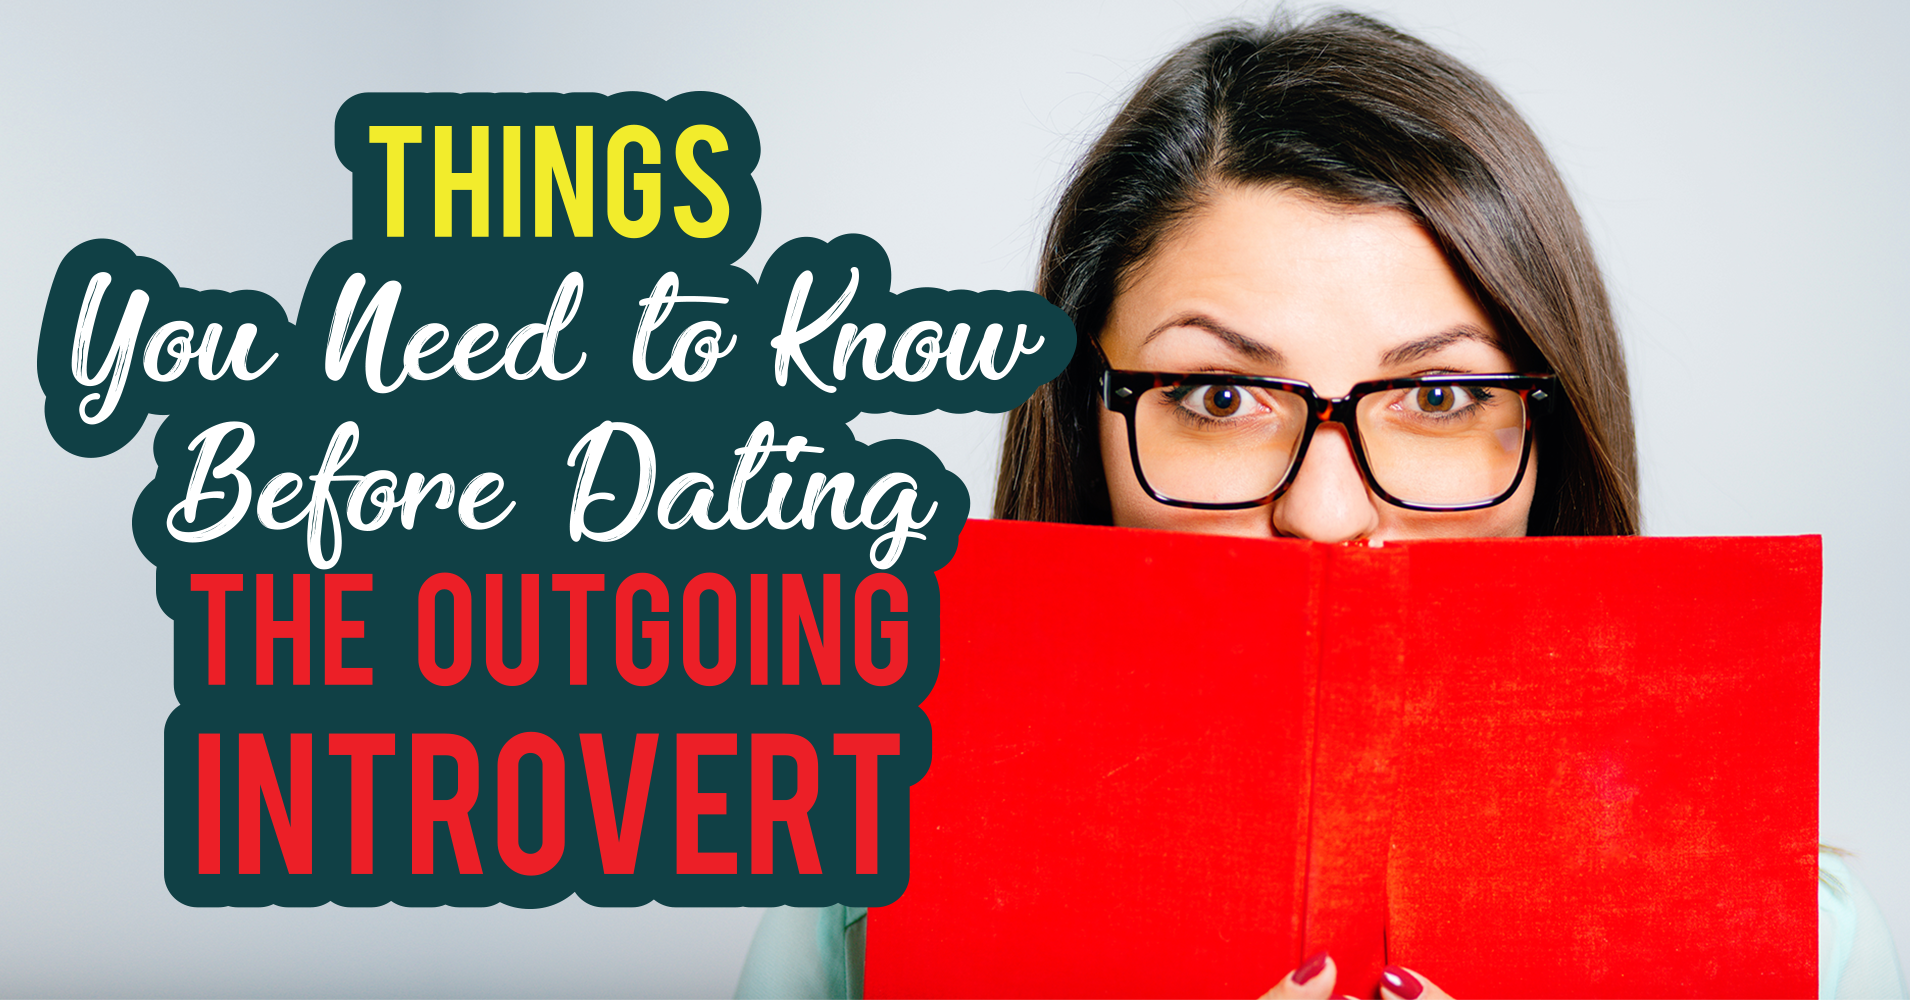 16 things you need to know before dating an introvert BIG SHOTS